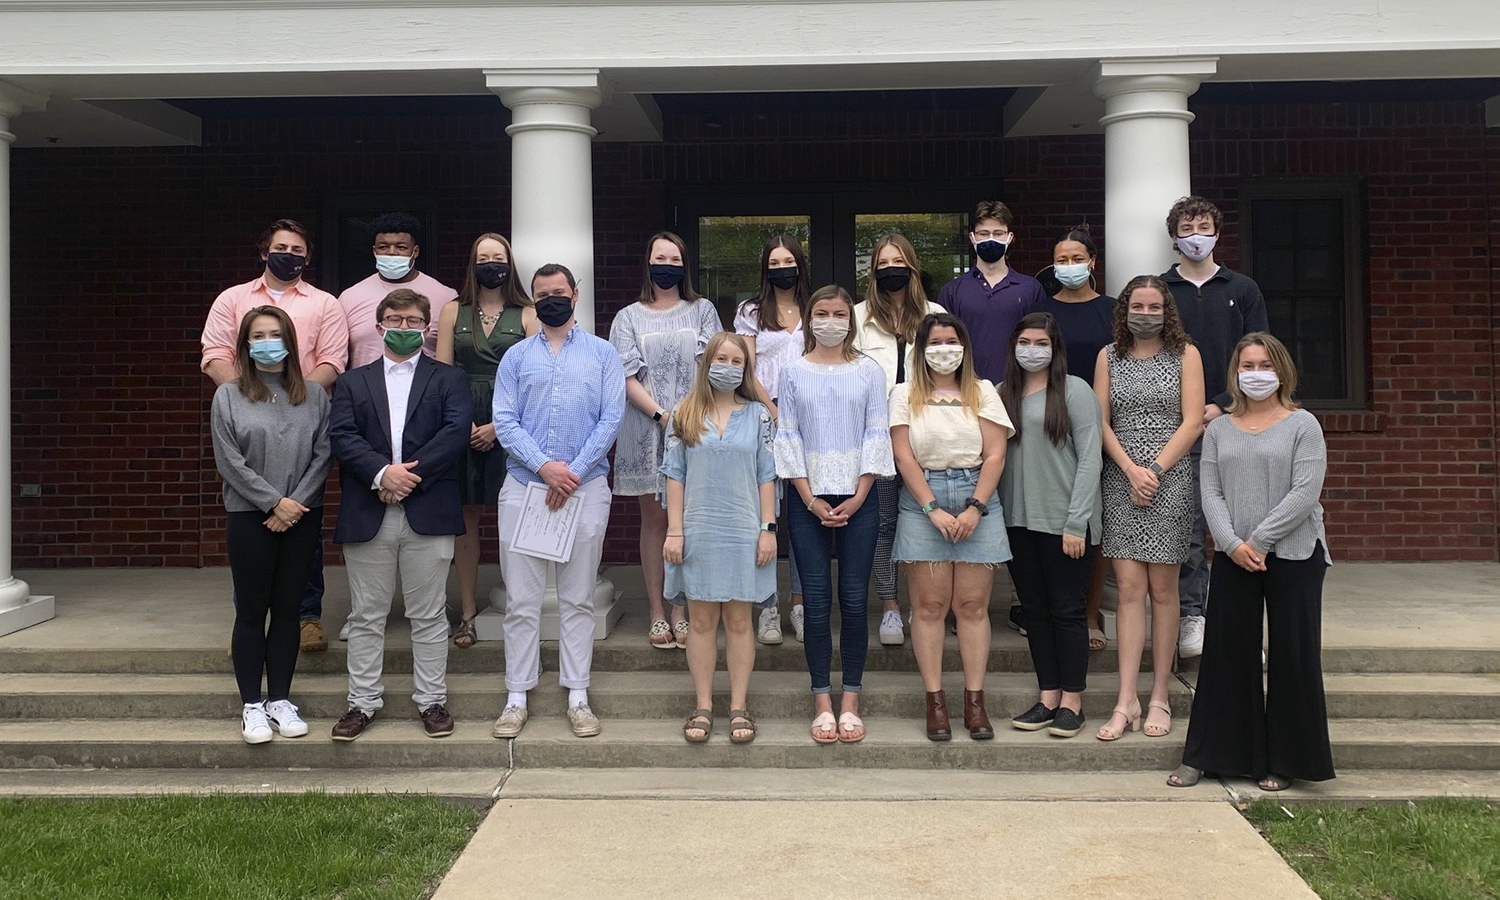 After receiving their HWS Leads certificate, the 24 recipients gather for a photo in front of the Seneca Room on Monday.  The leadership program provides the foundation for students to develop into ethical, inclusive and value-based leaders.